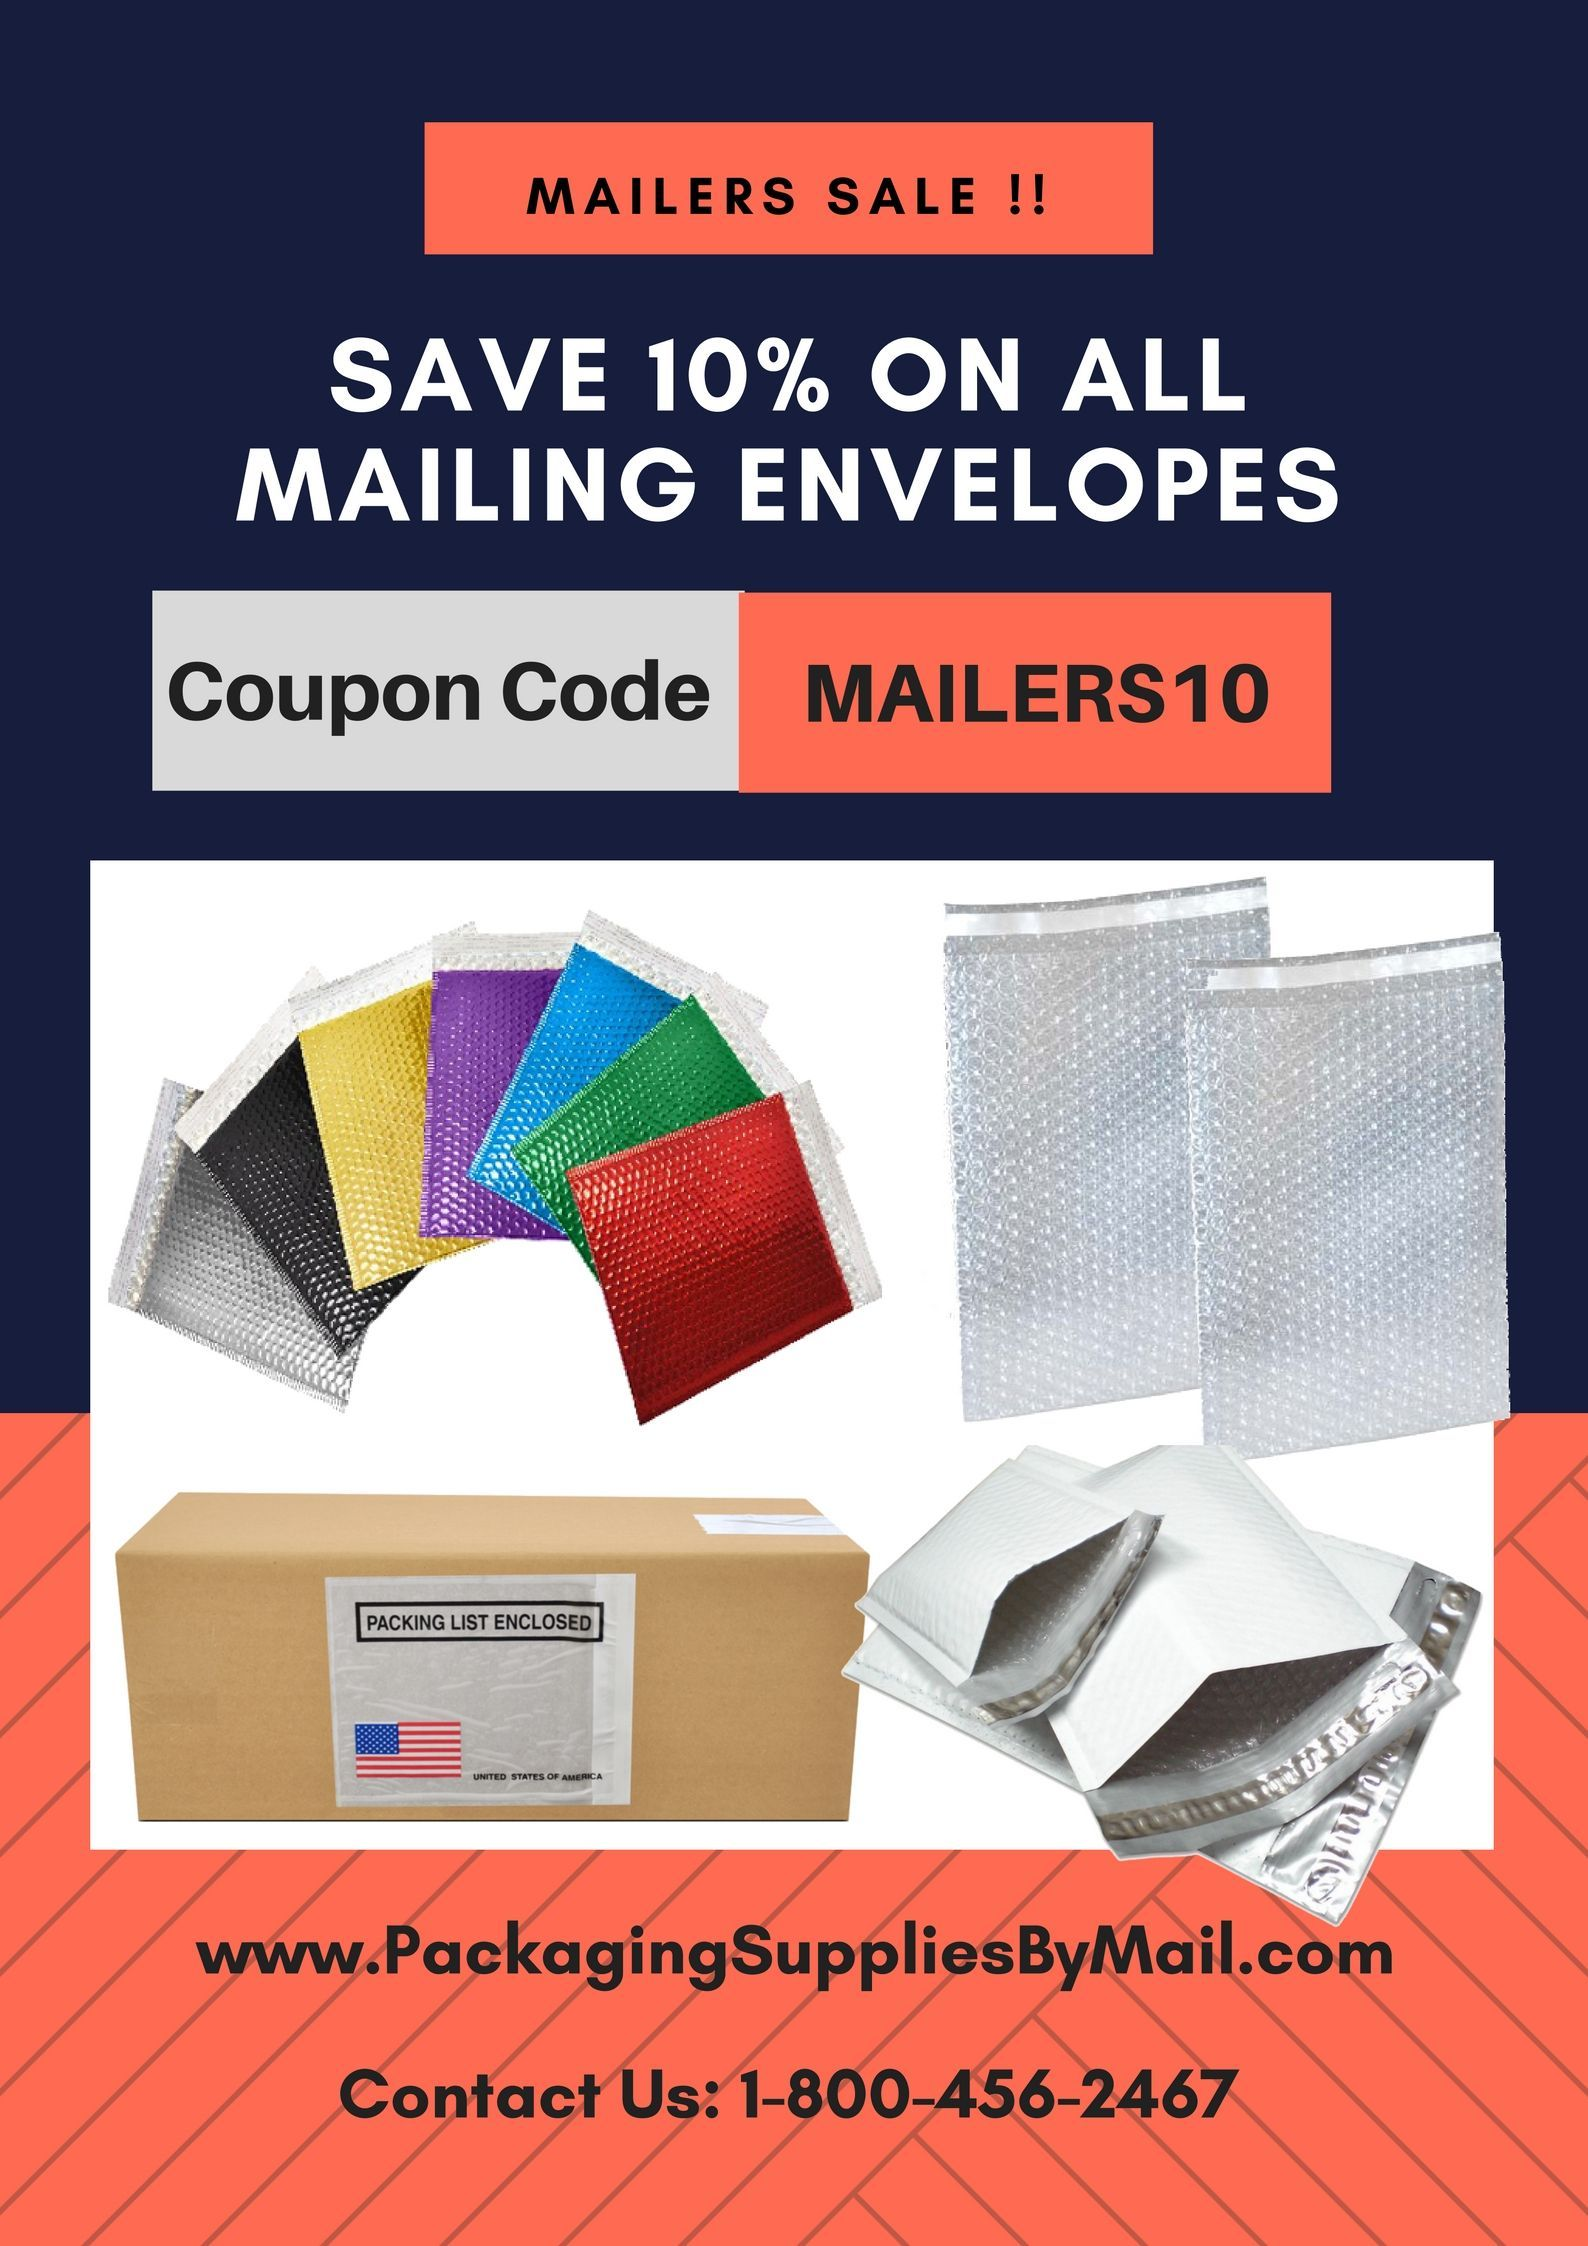 Absorbed Mailers Layout Mailing Salemailers In 2020